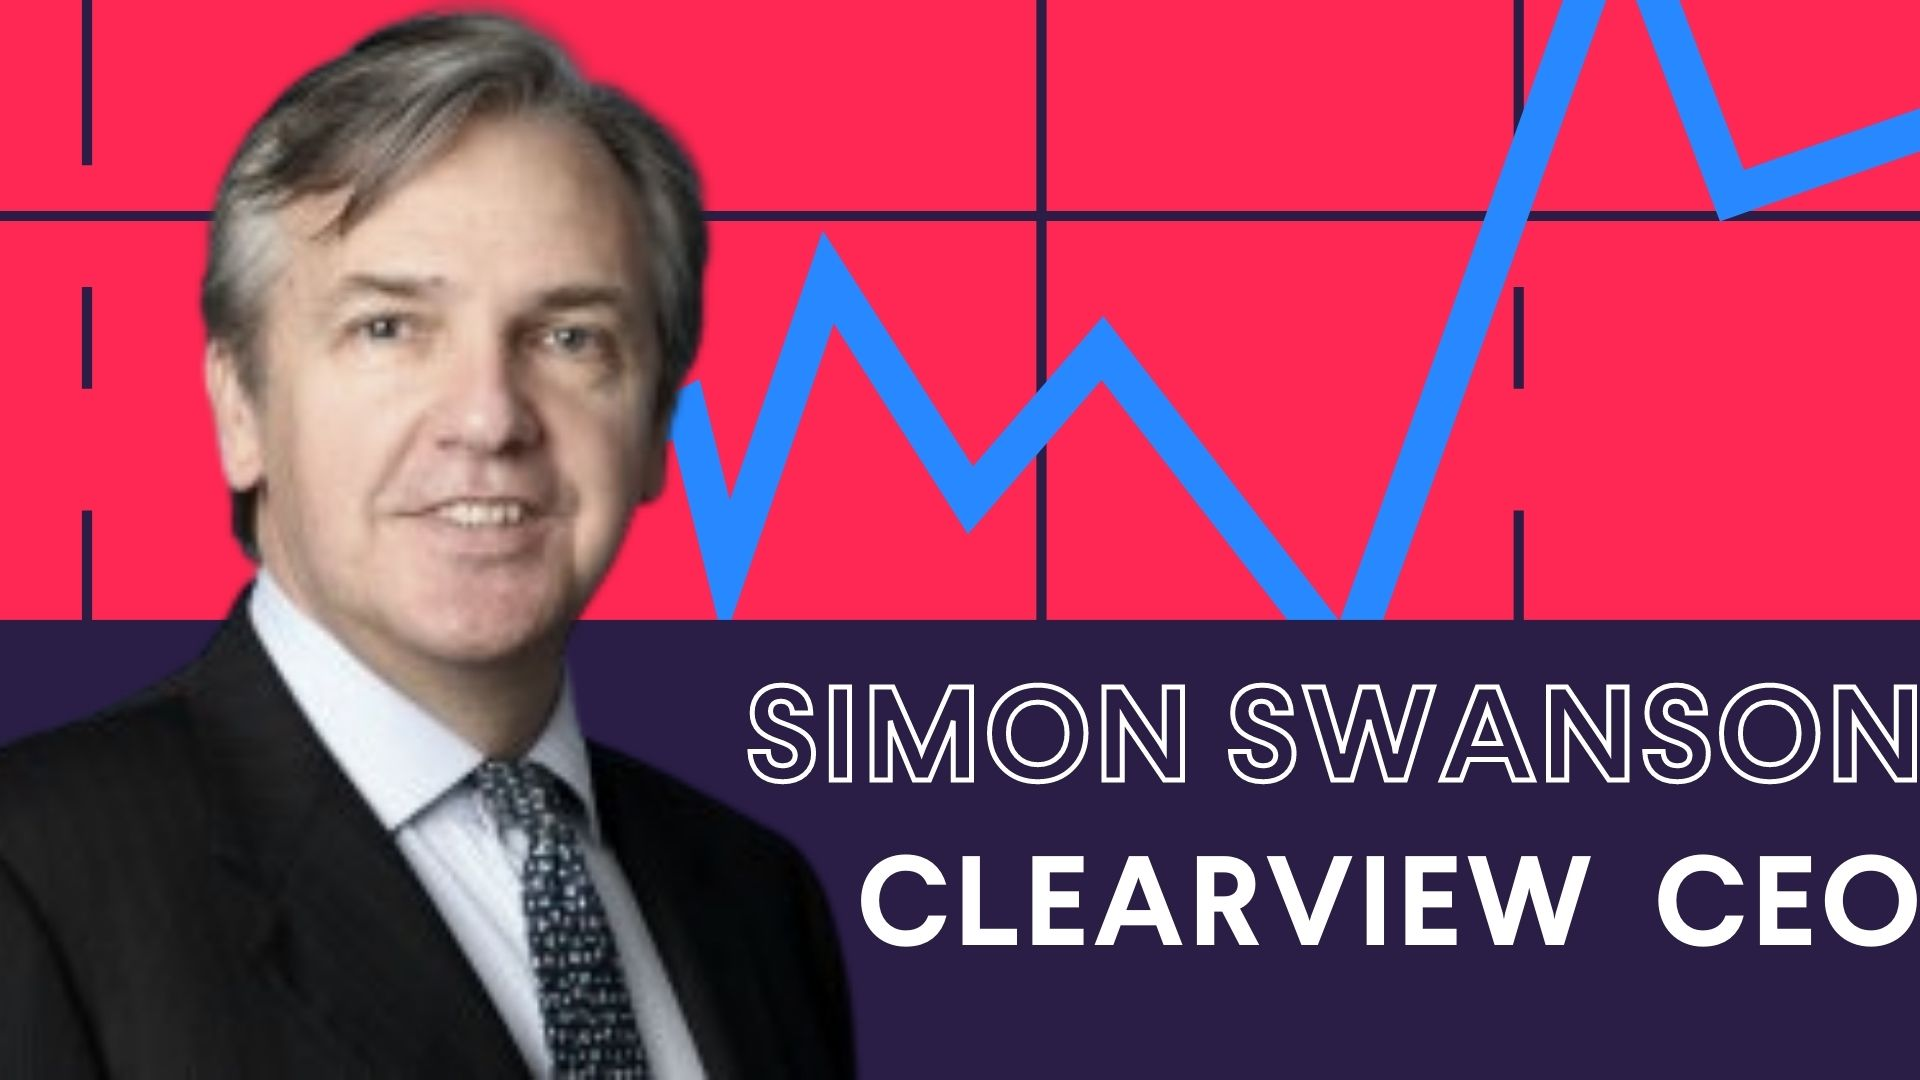 This ain't no swansong; Simon says new alliance will make waves